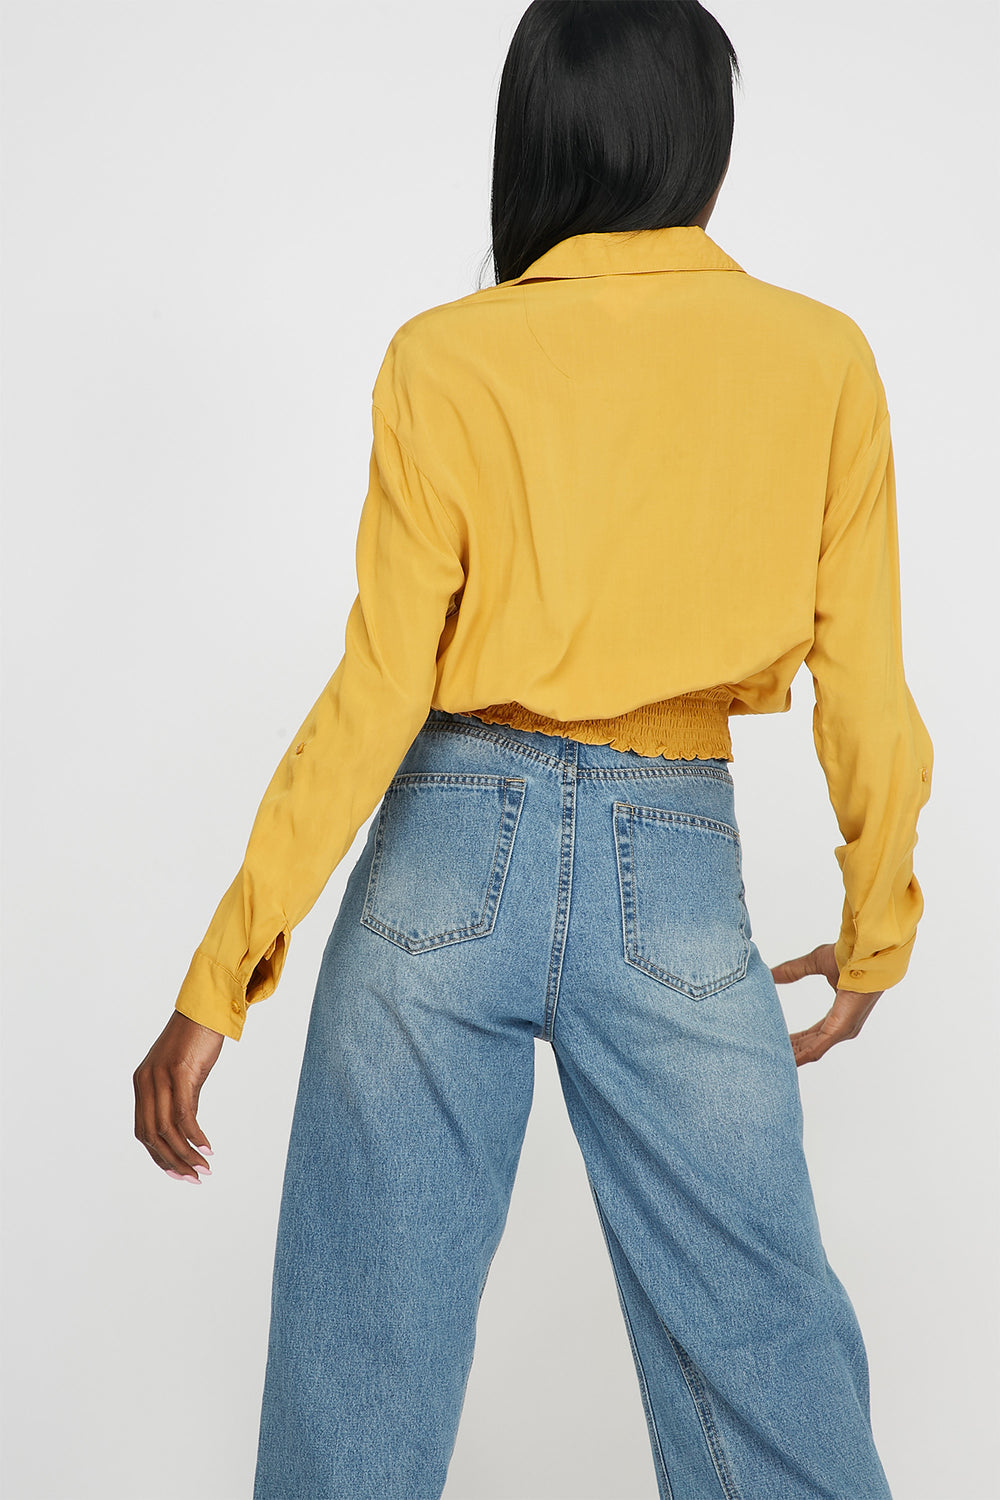 Front-Tie Button Up Long Sleeve Mustard